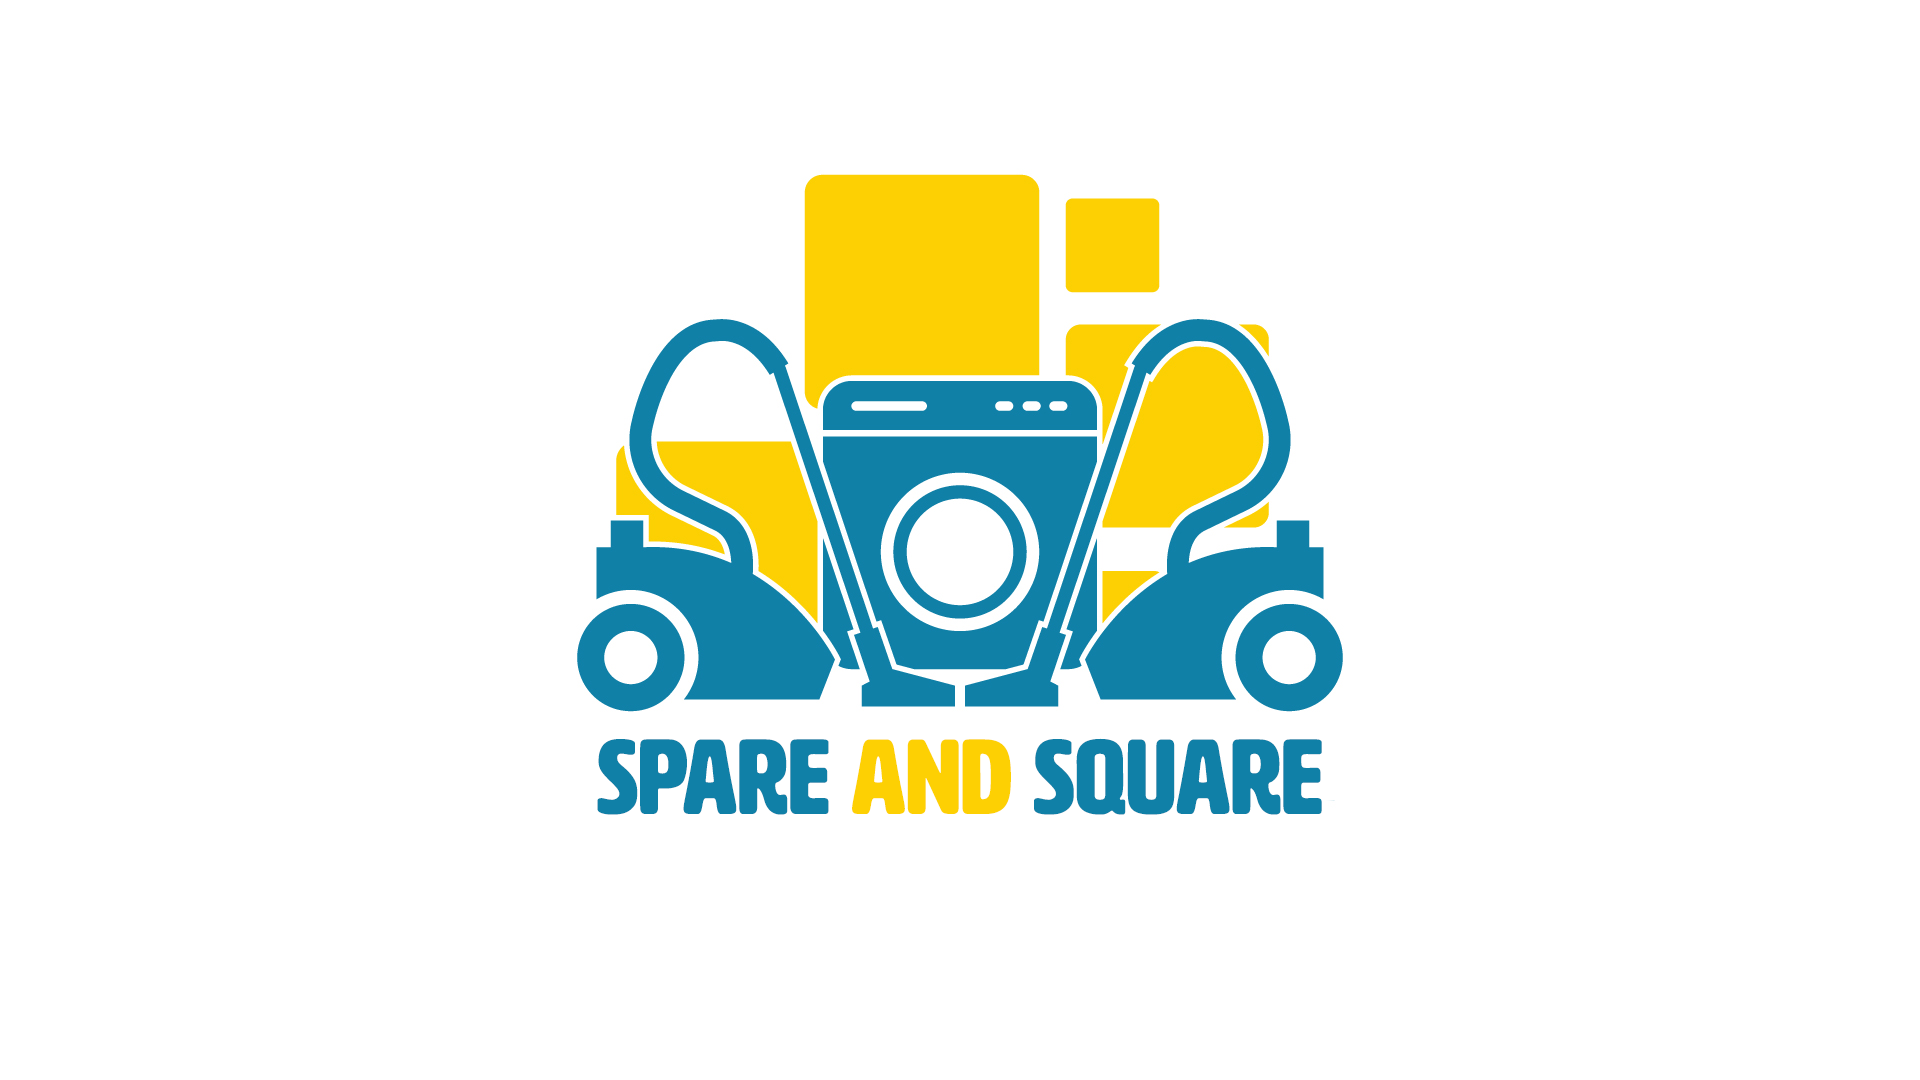 Spare and Square - About